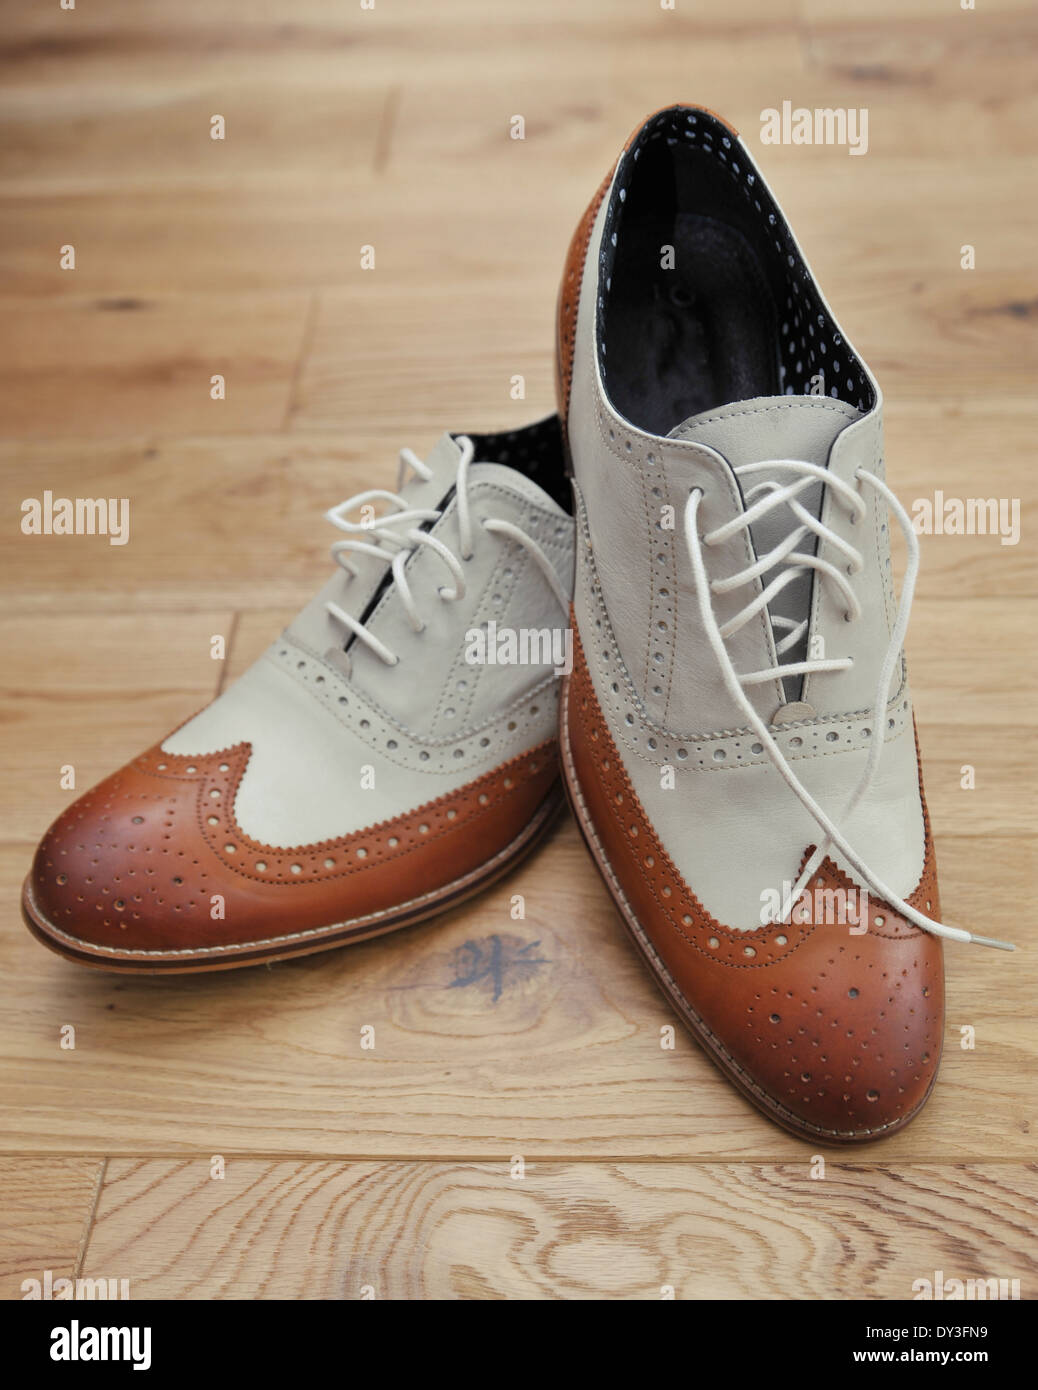 official order retail prices Two Tone Shoes Stock Photos & Two Tone Shoes Stock Images - Alamy